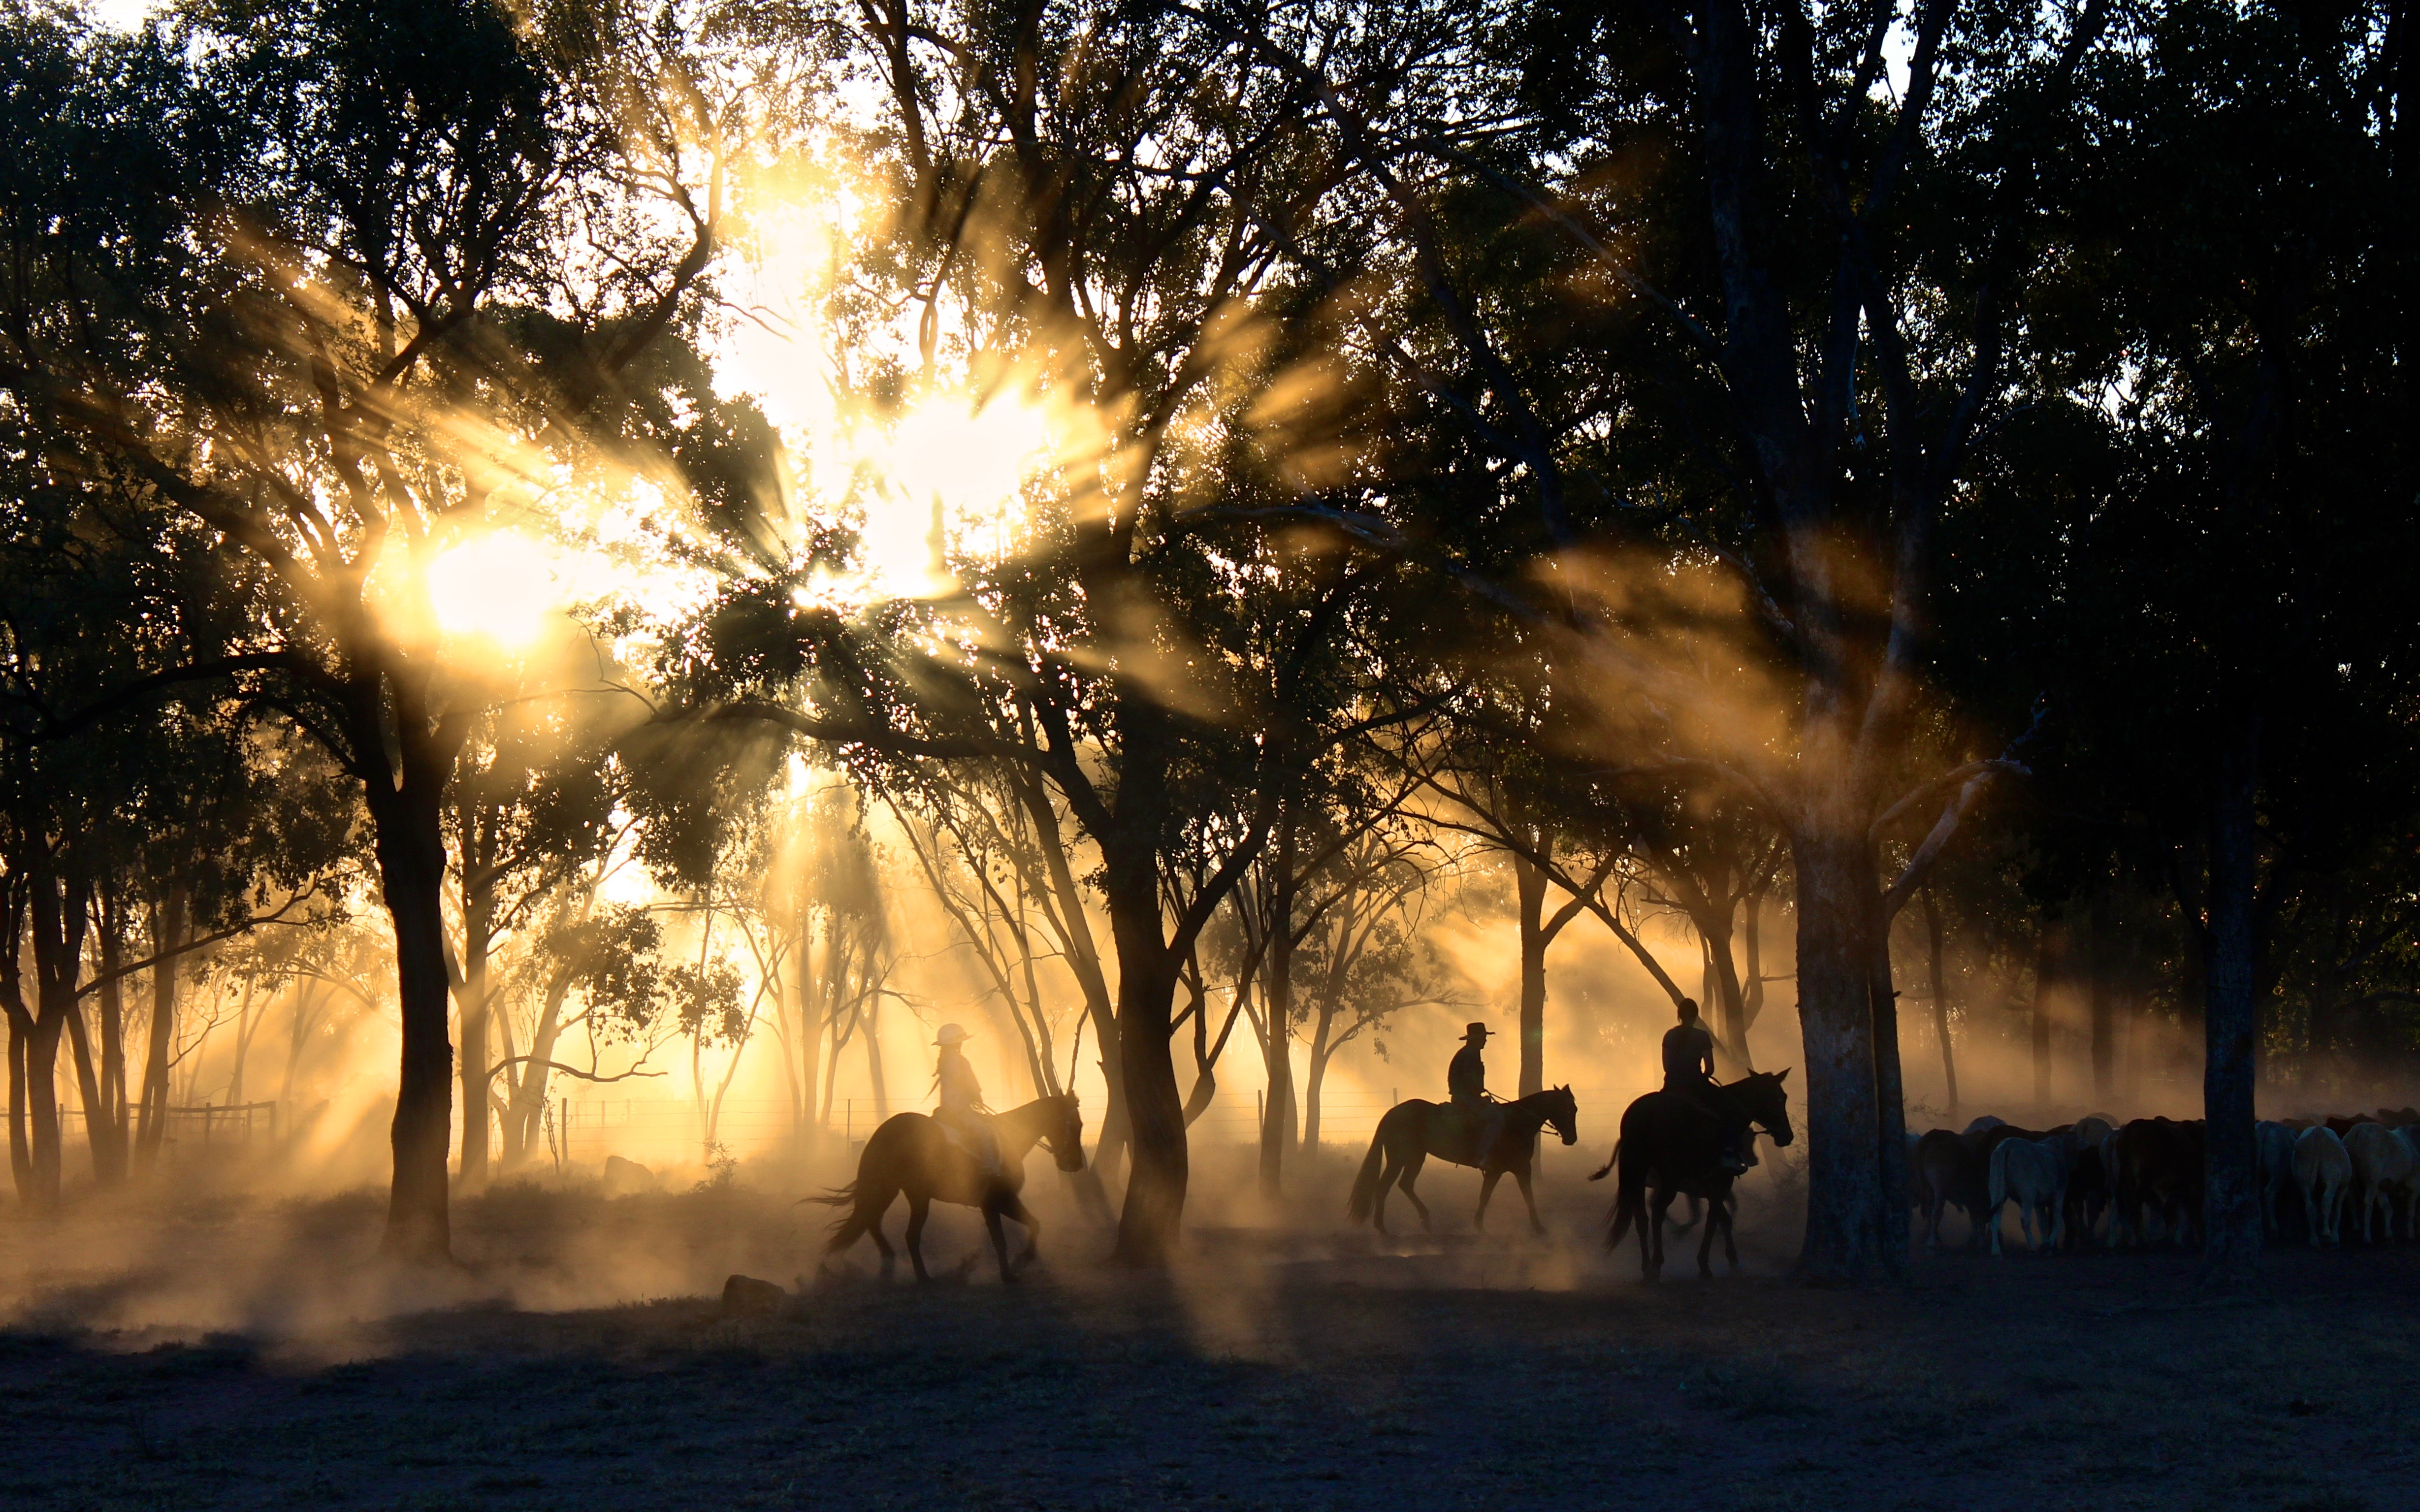 Silhouette P Ography Of Horse Riders On Trees